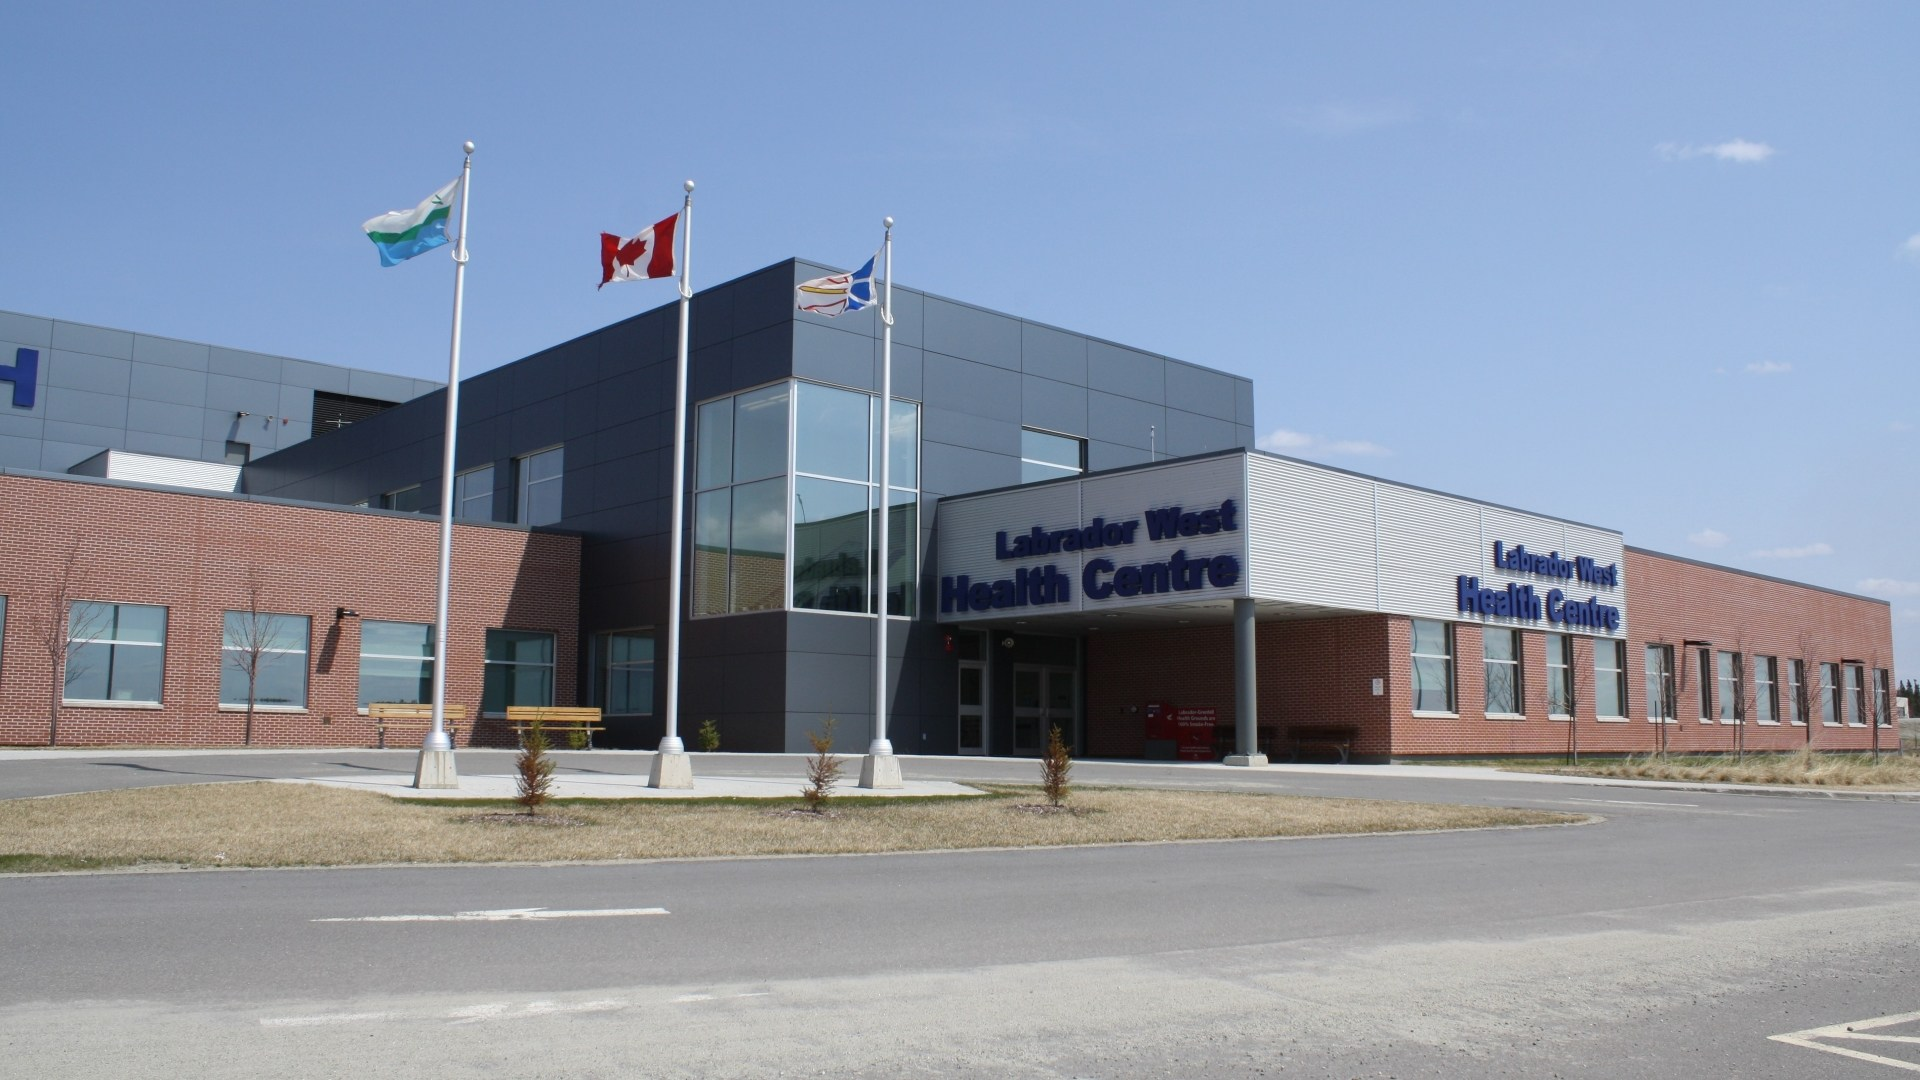 Labrador West's new state-of-the-art Health Centre.